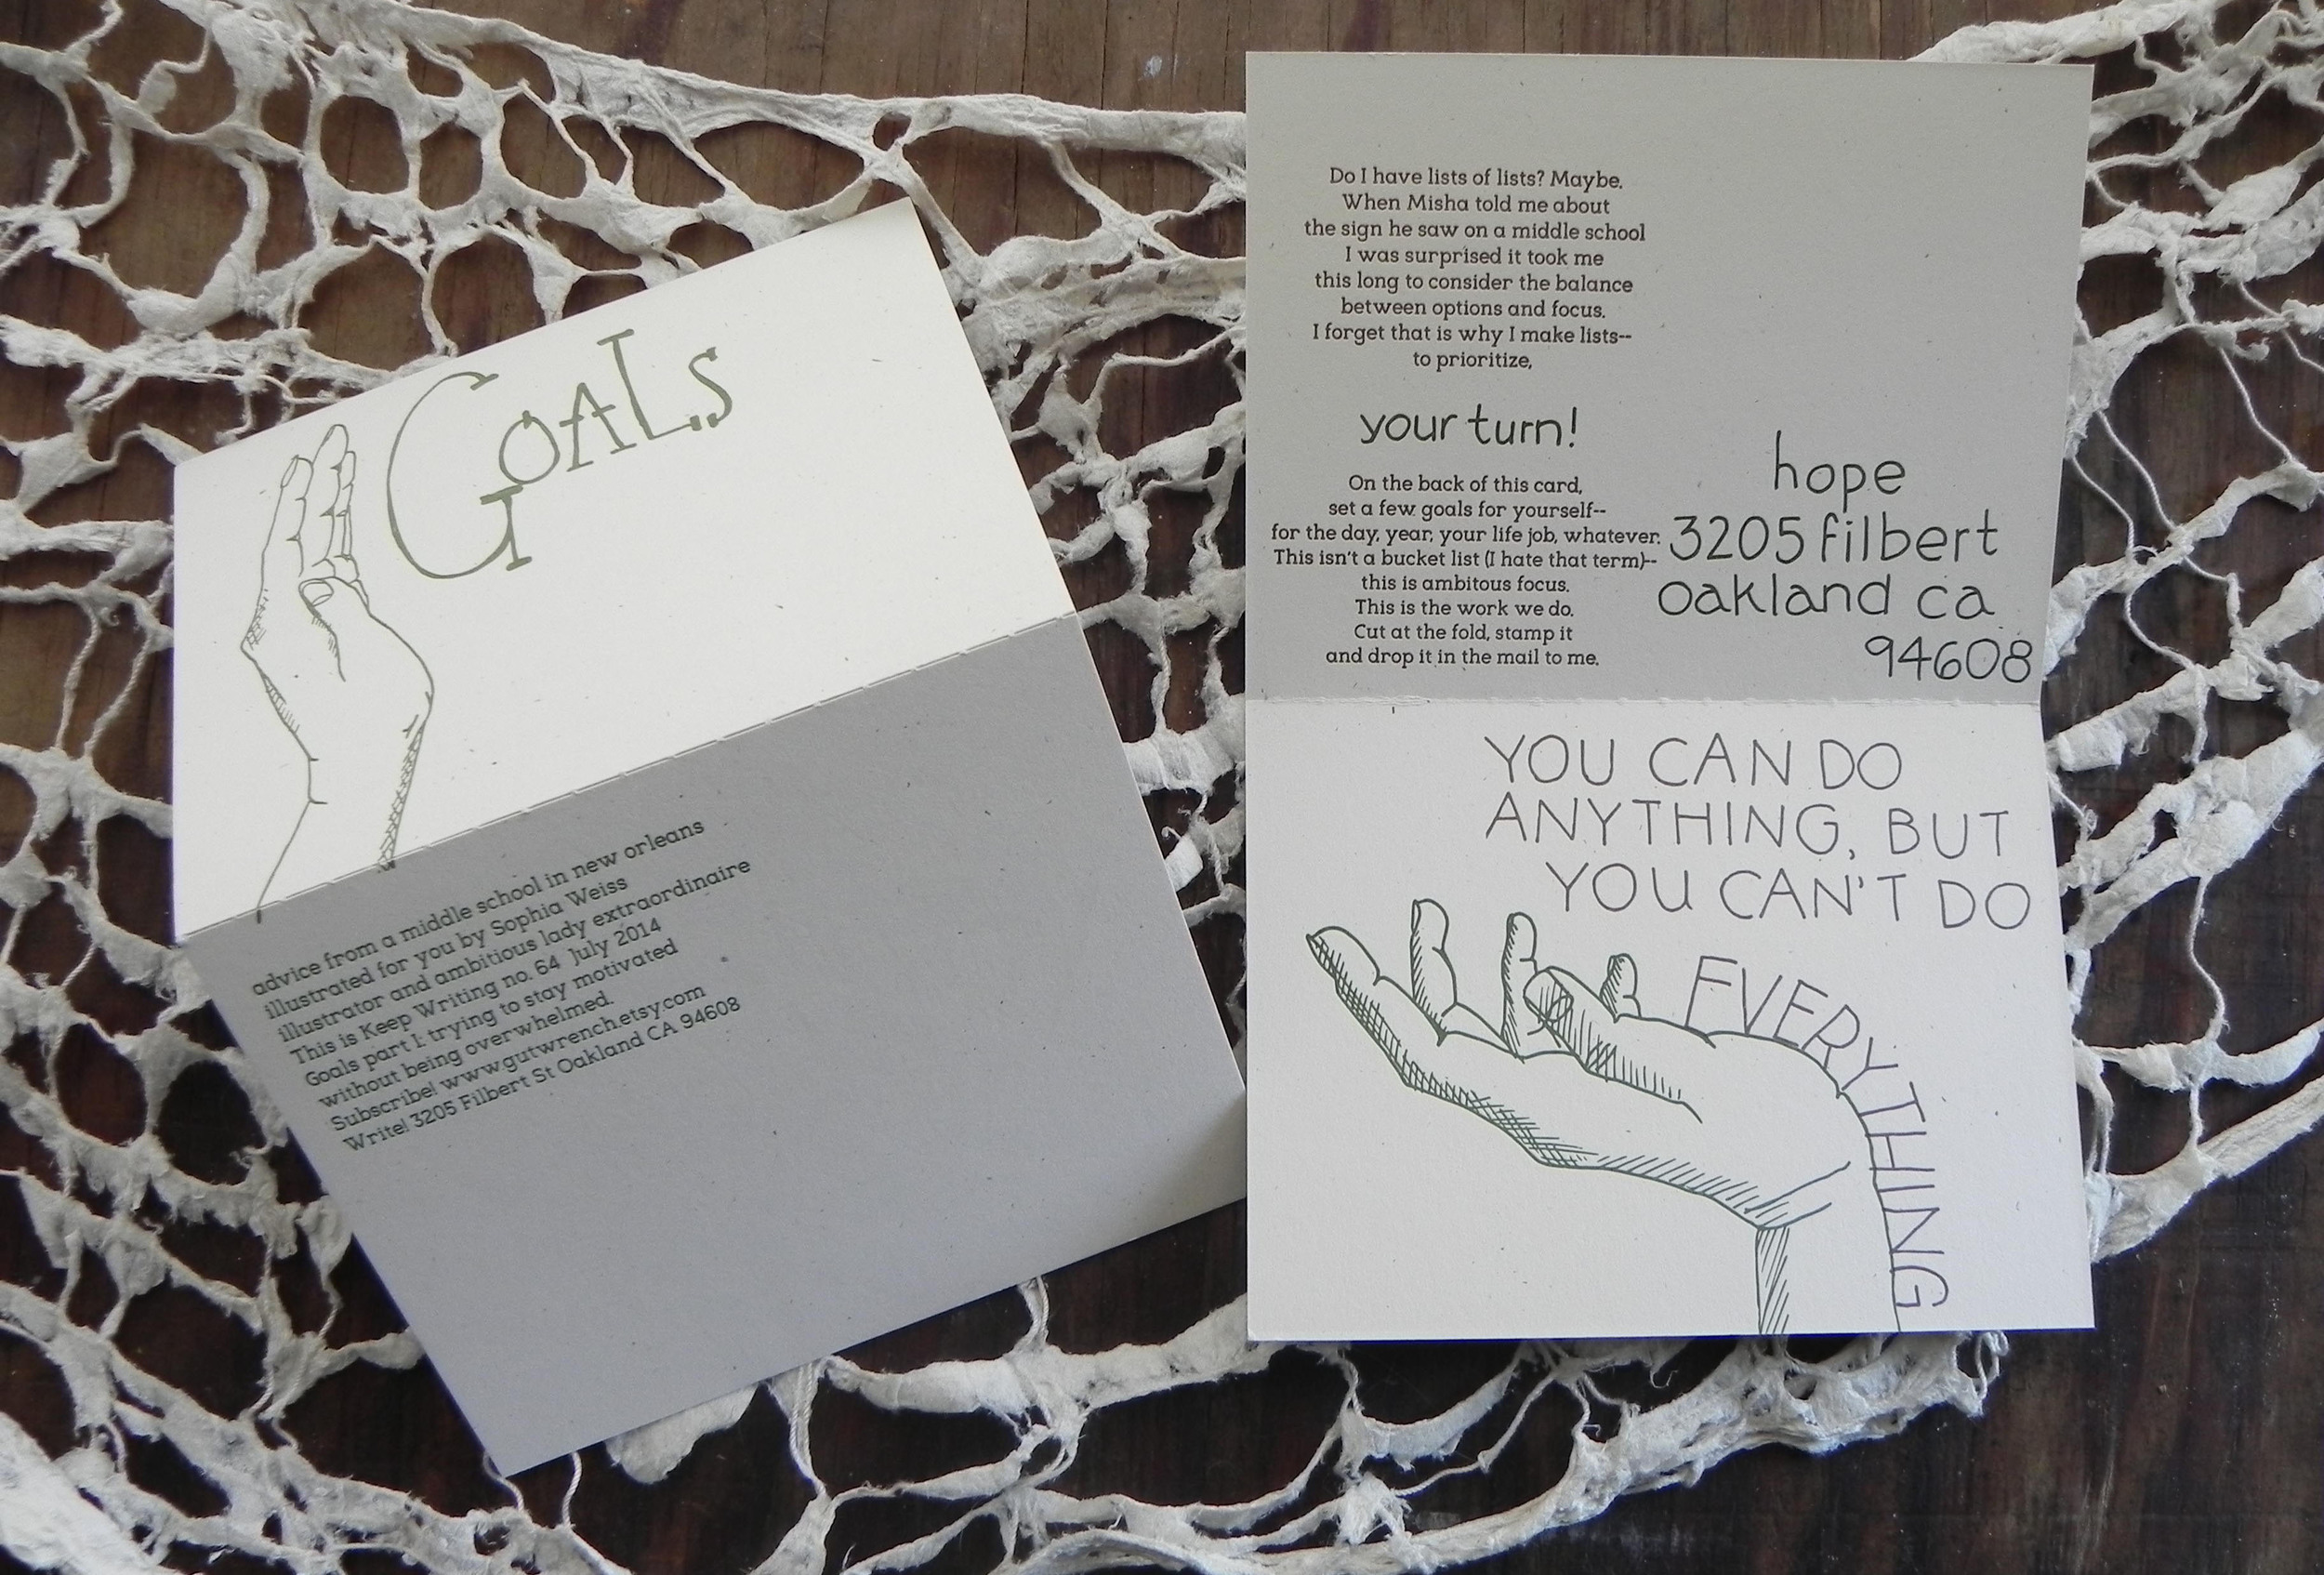 Keep Writing #64 July 2014 , Illustration by Sophie Weiss, letterpress printed on #140 Madero Beach paper from French. Text borrowed from a middle school pep talk. Retrun card asks you about goals you have for yourself.